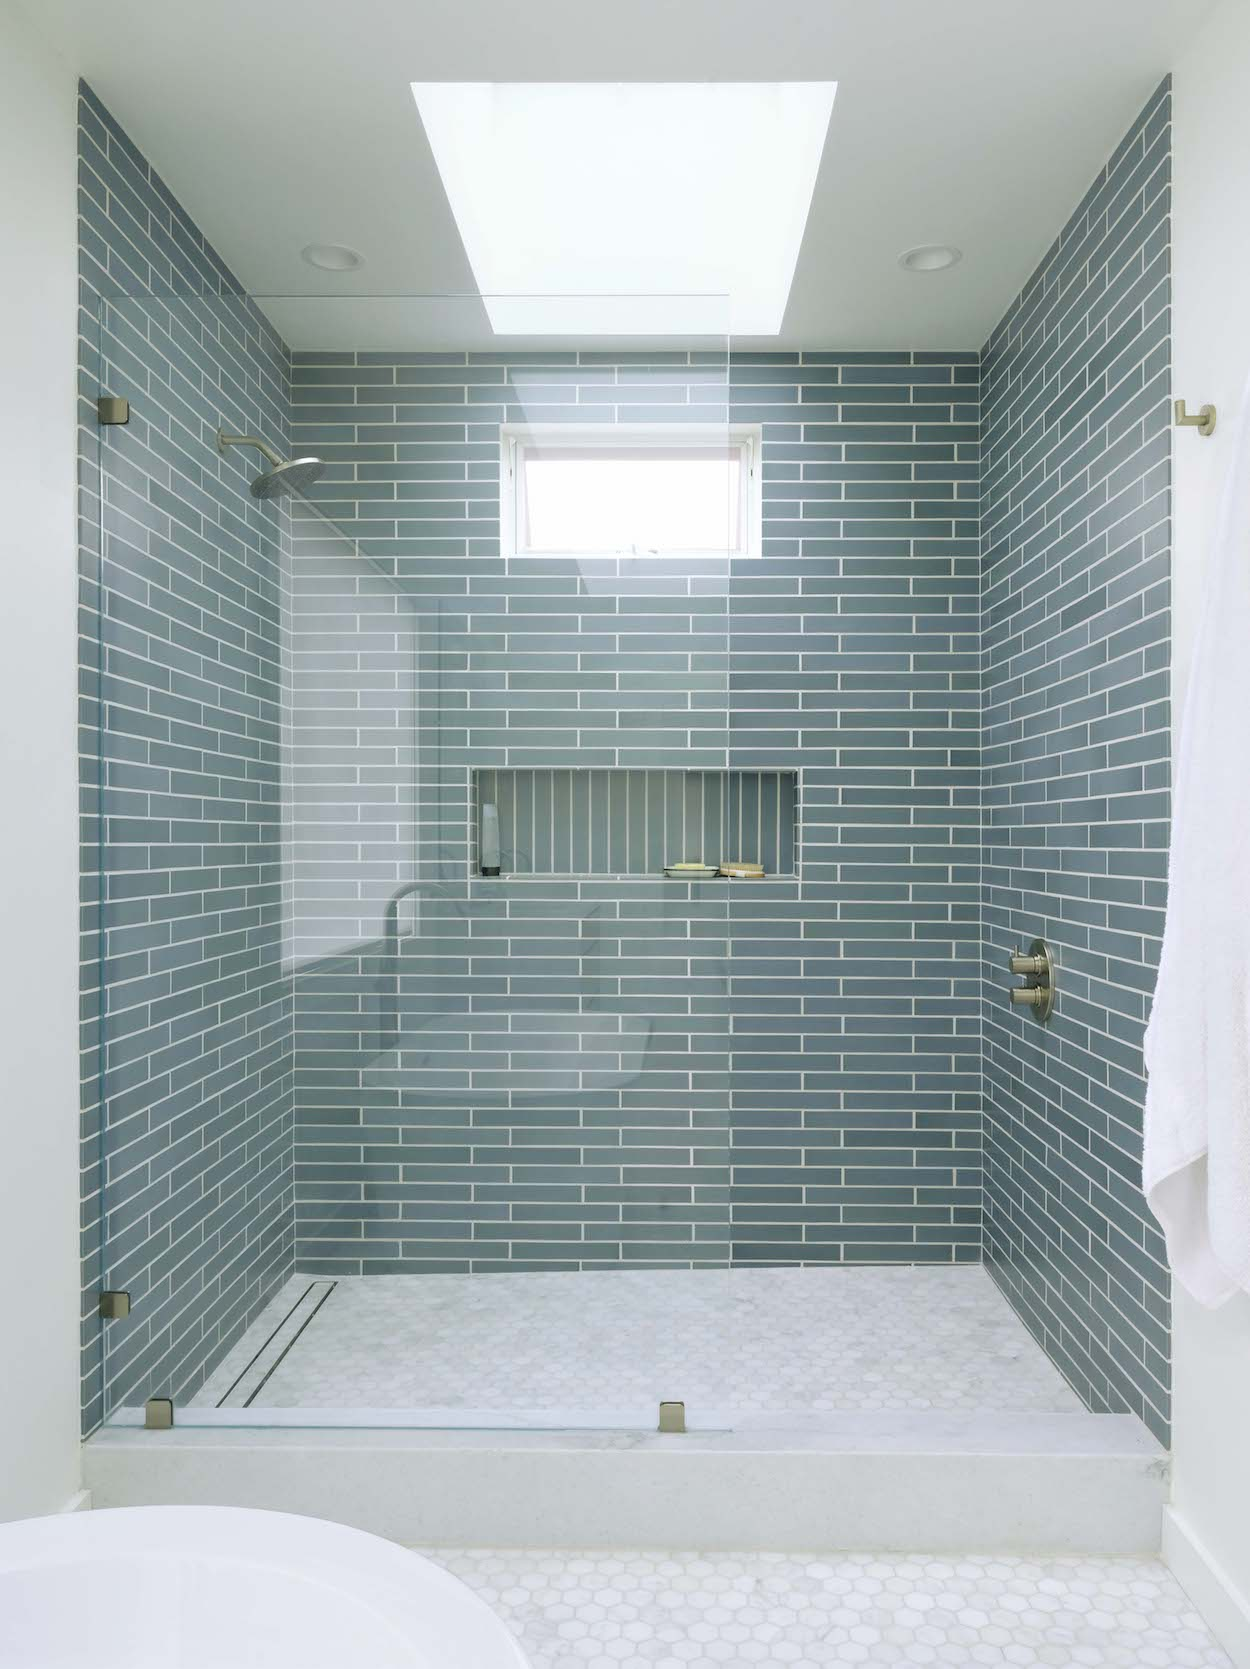 walk in shower with marble flooring and blue wall tile with vertical tiled niche and brushed nickel shower fixtures.jpg